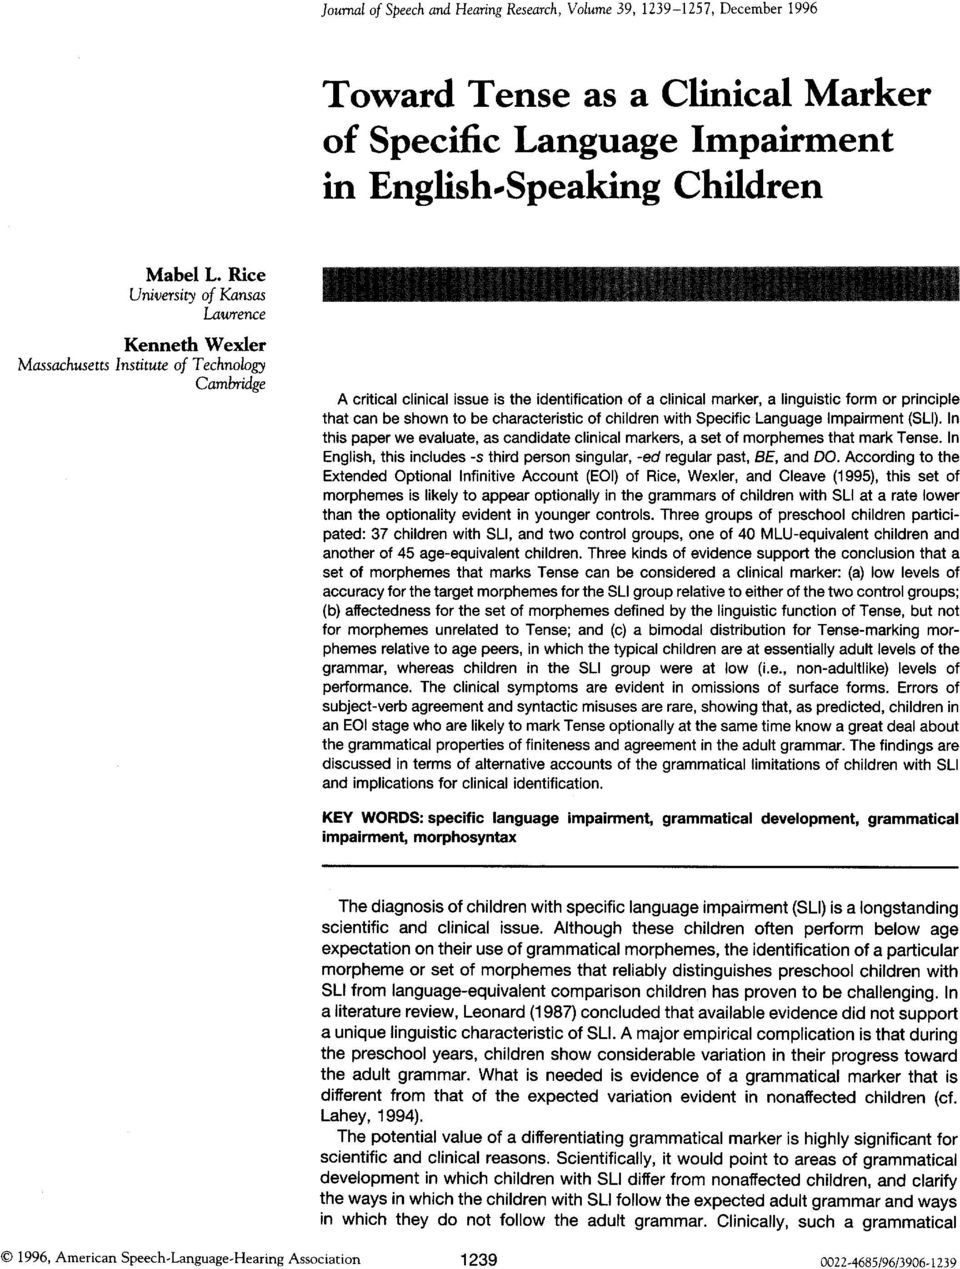 that can be shown to be characteristic of children with Specific Language Impairment (SLI). In this paper we evaluate, as candidate clinical markers, a set of morphemes that mark Tense.